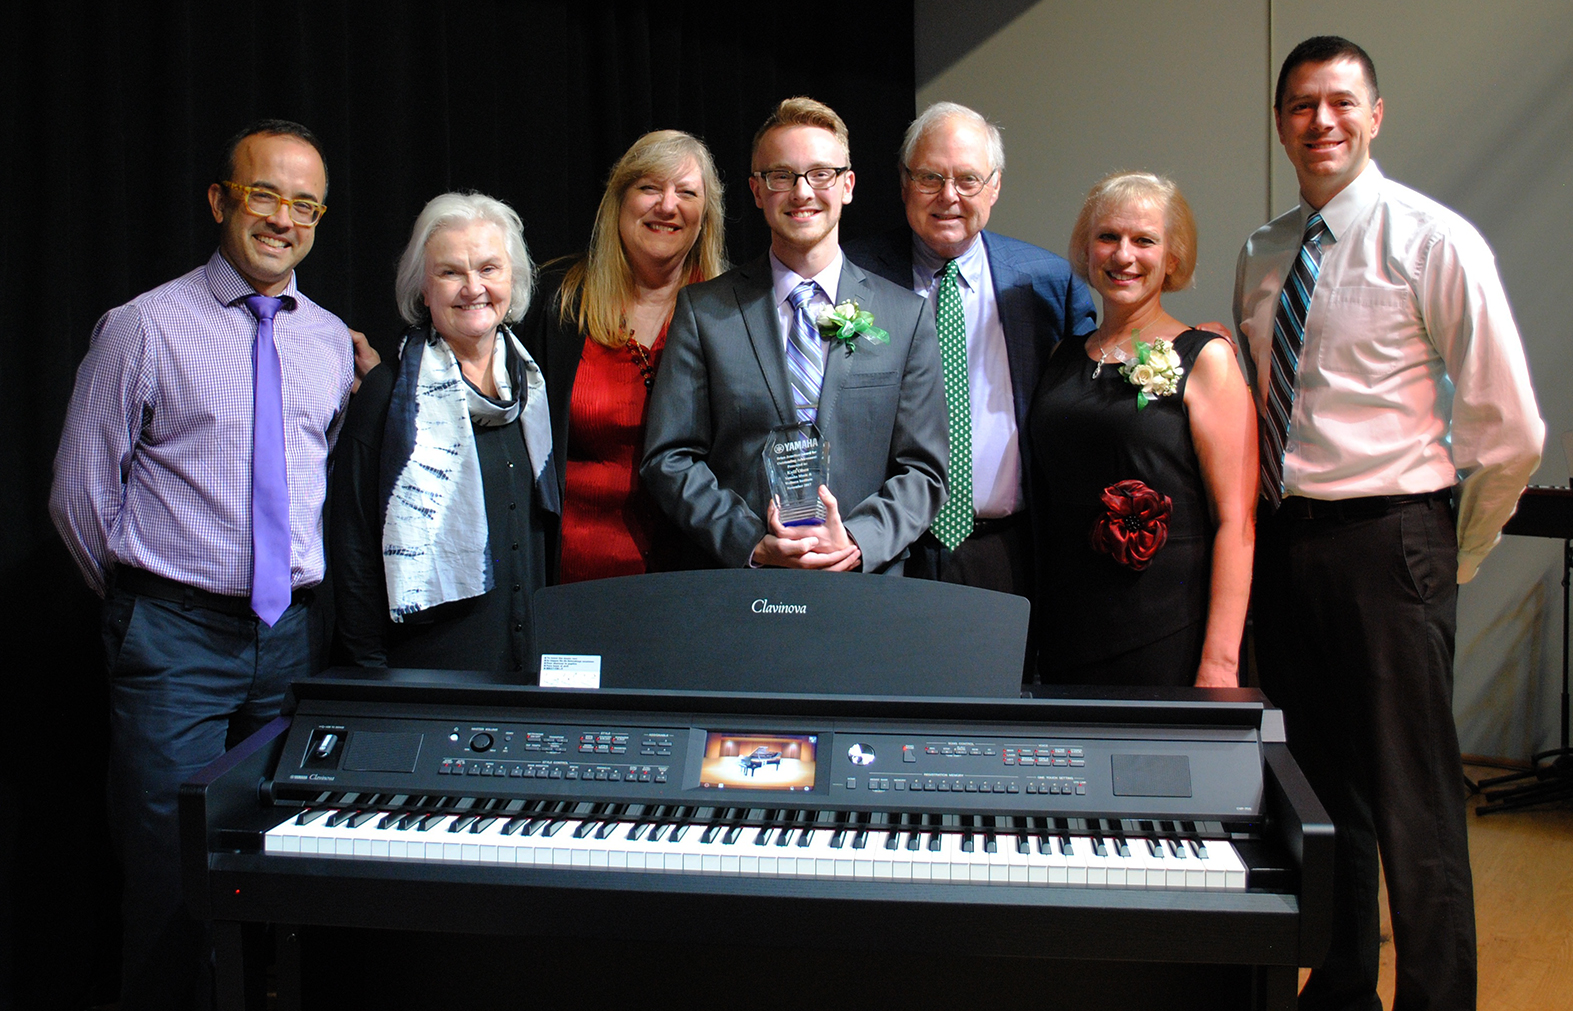 L to R: Derek Polischuk, MSU associate professor of piano; Deborah Moriarty, MSU piano professor; Lori Frazer, PROGRAM SPECIALIST, Yamaha Music and Wellness Institute; Kalil Olsen; Merritt Lutz; Ann Olsen; Jimmy Edwards, president, Marshall Music.